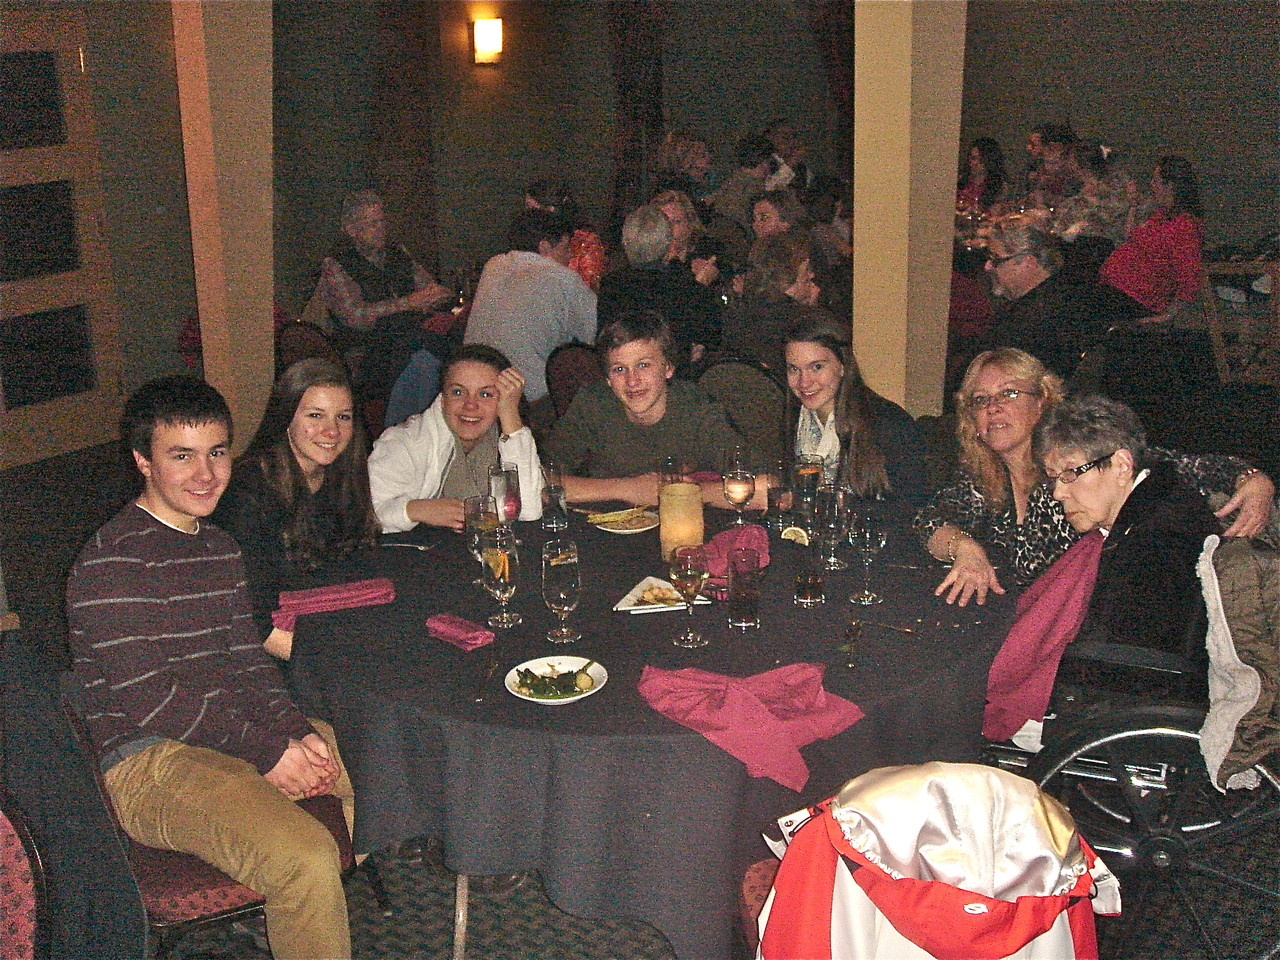 Dinner at Gentile's Rest., Syracuse, NY on Al's B'day, Dec. 28. Trevan, Sara, Kate, Jack, Ellie, Traci Hart, & Eleanor Gudas.